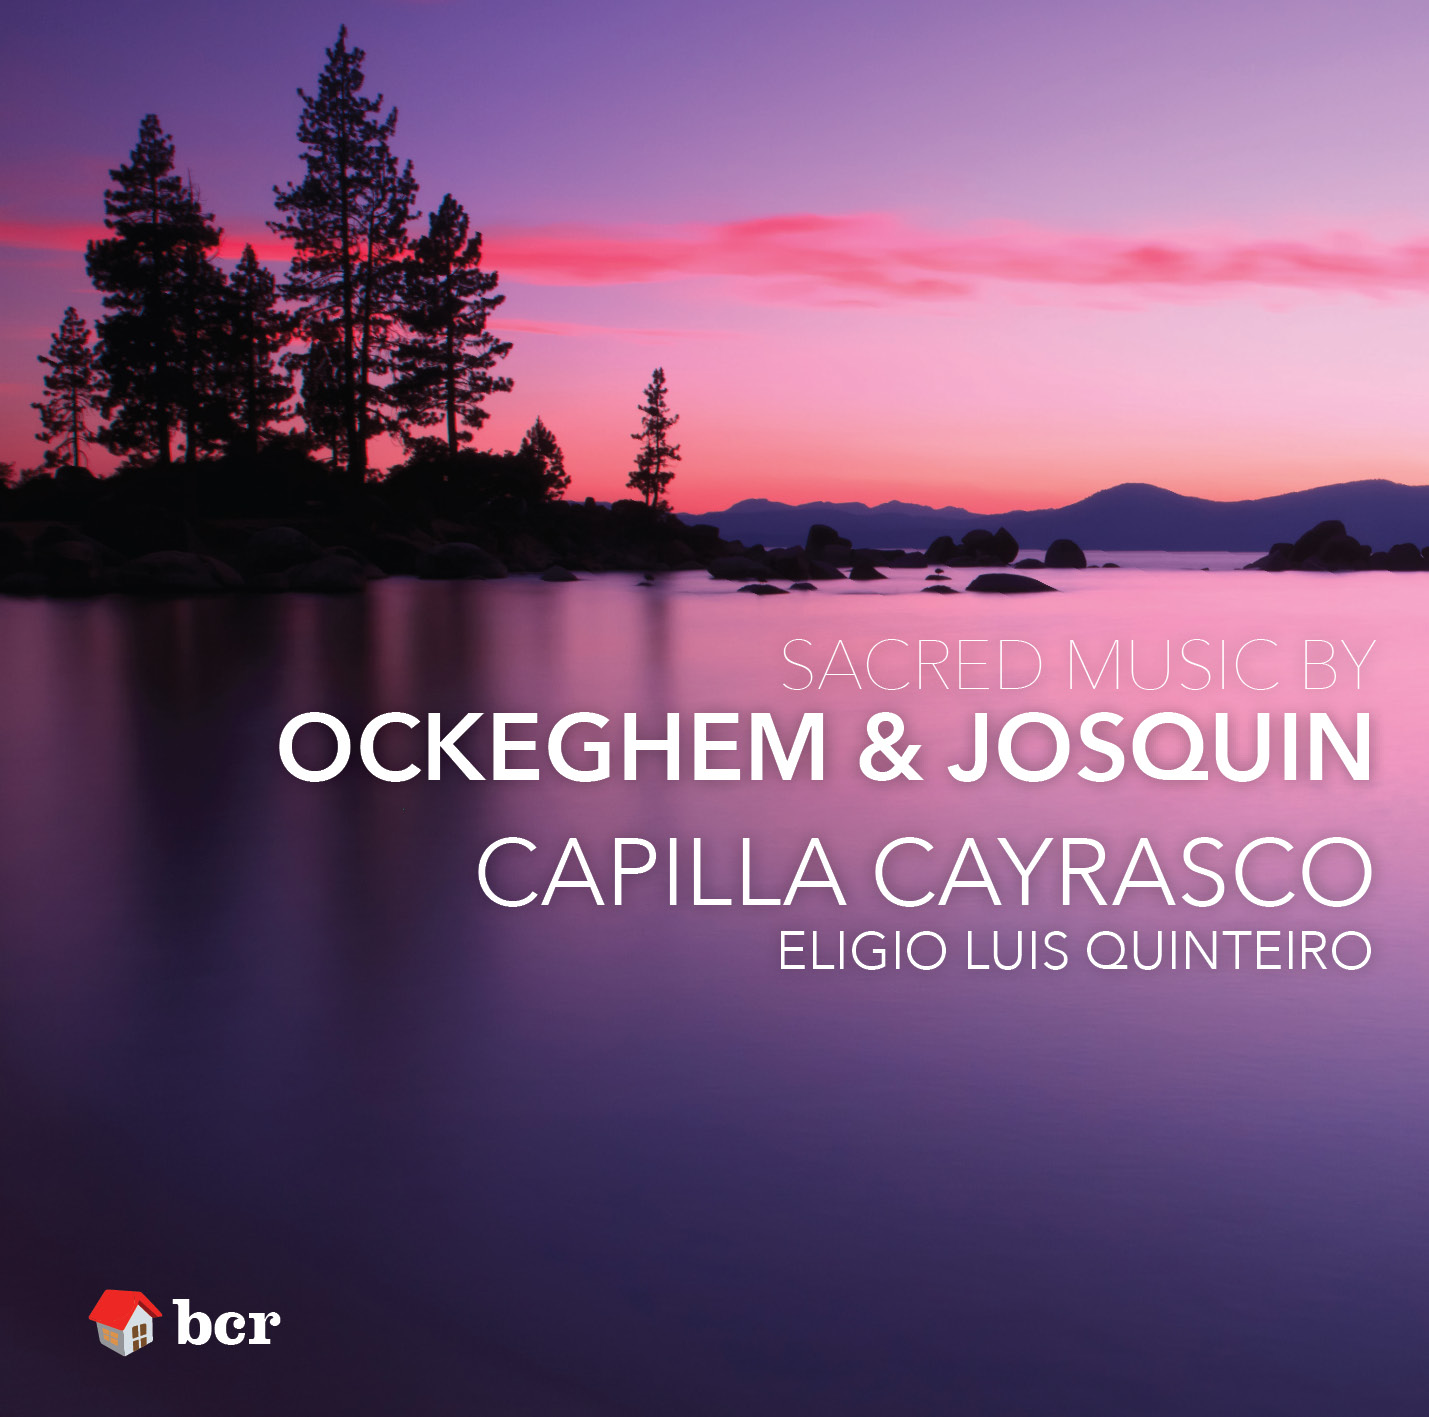 Cover image of Capilla Cayrasco CD, showing lake and sunset